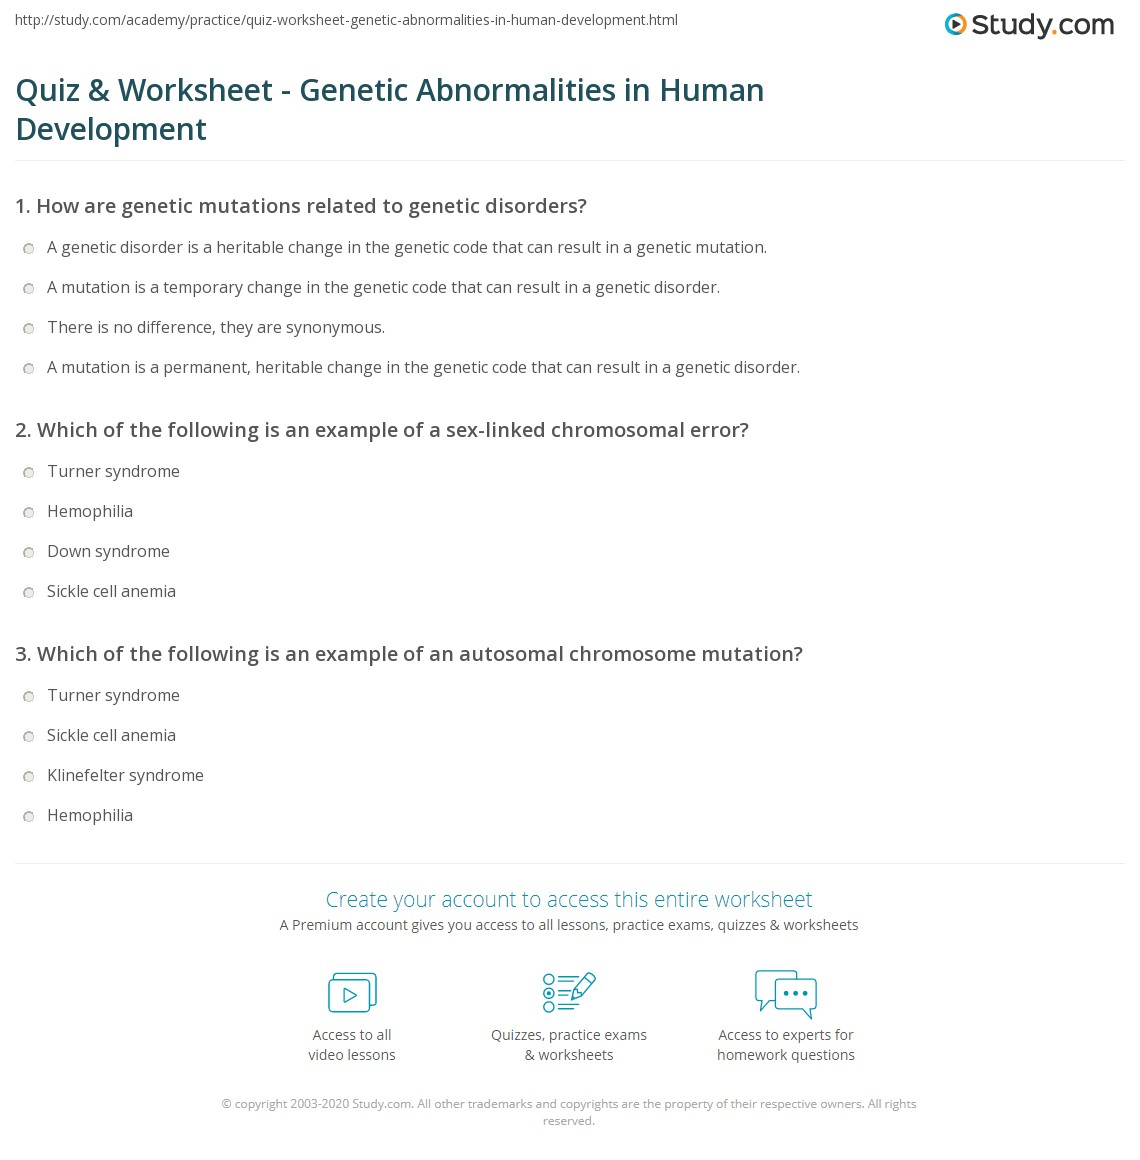 quiz worksheet genetic abnor ties in human development print genetic abnor ties in human growth and development worksheet